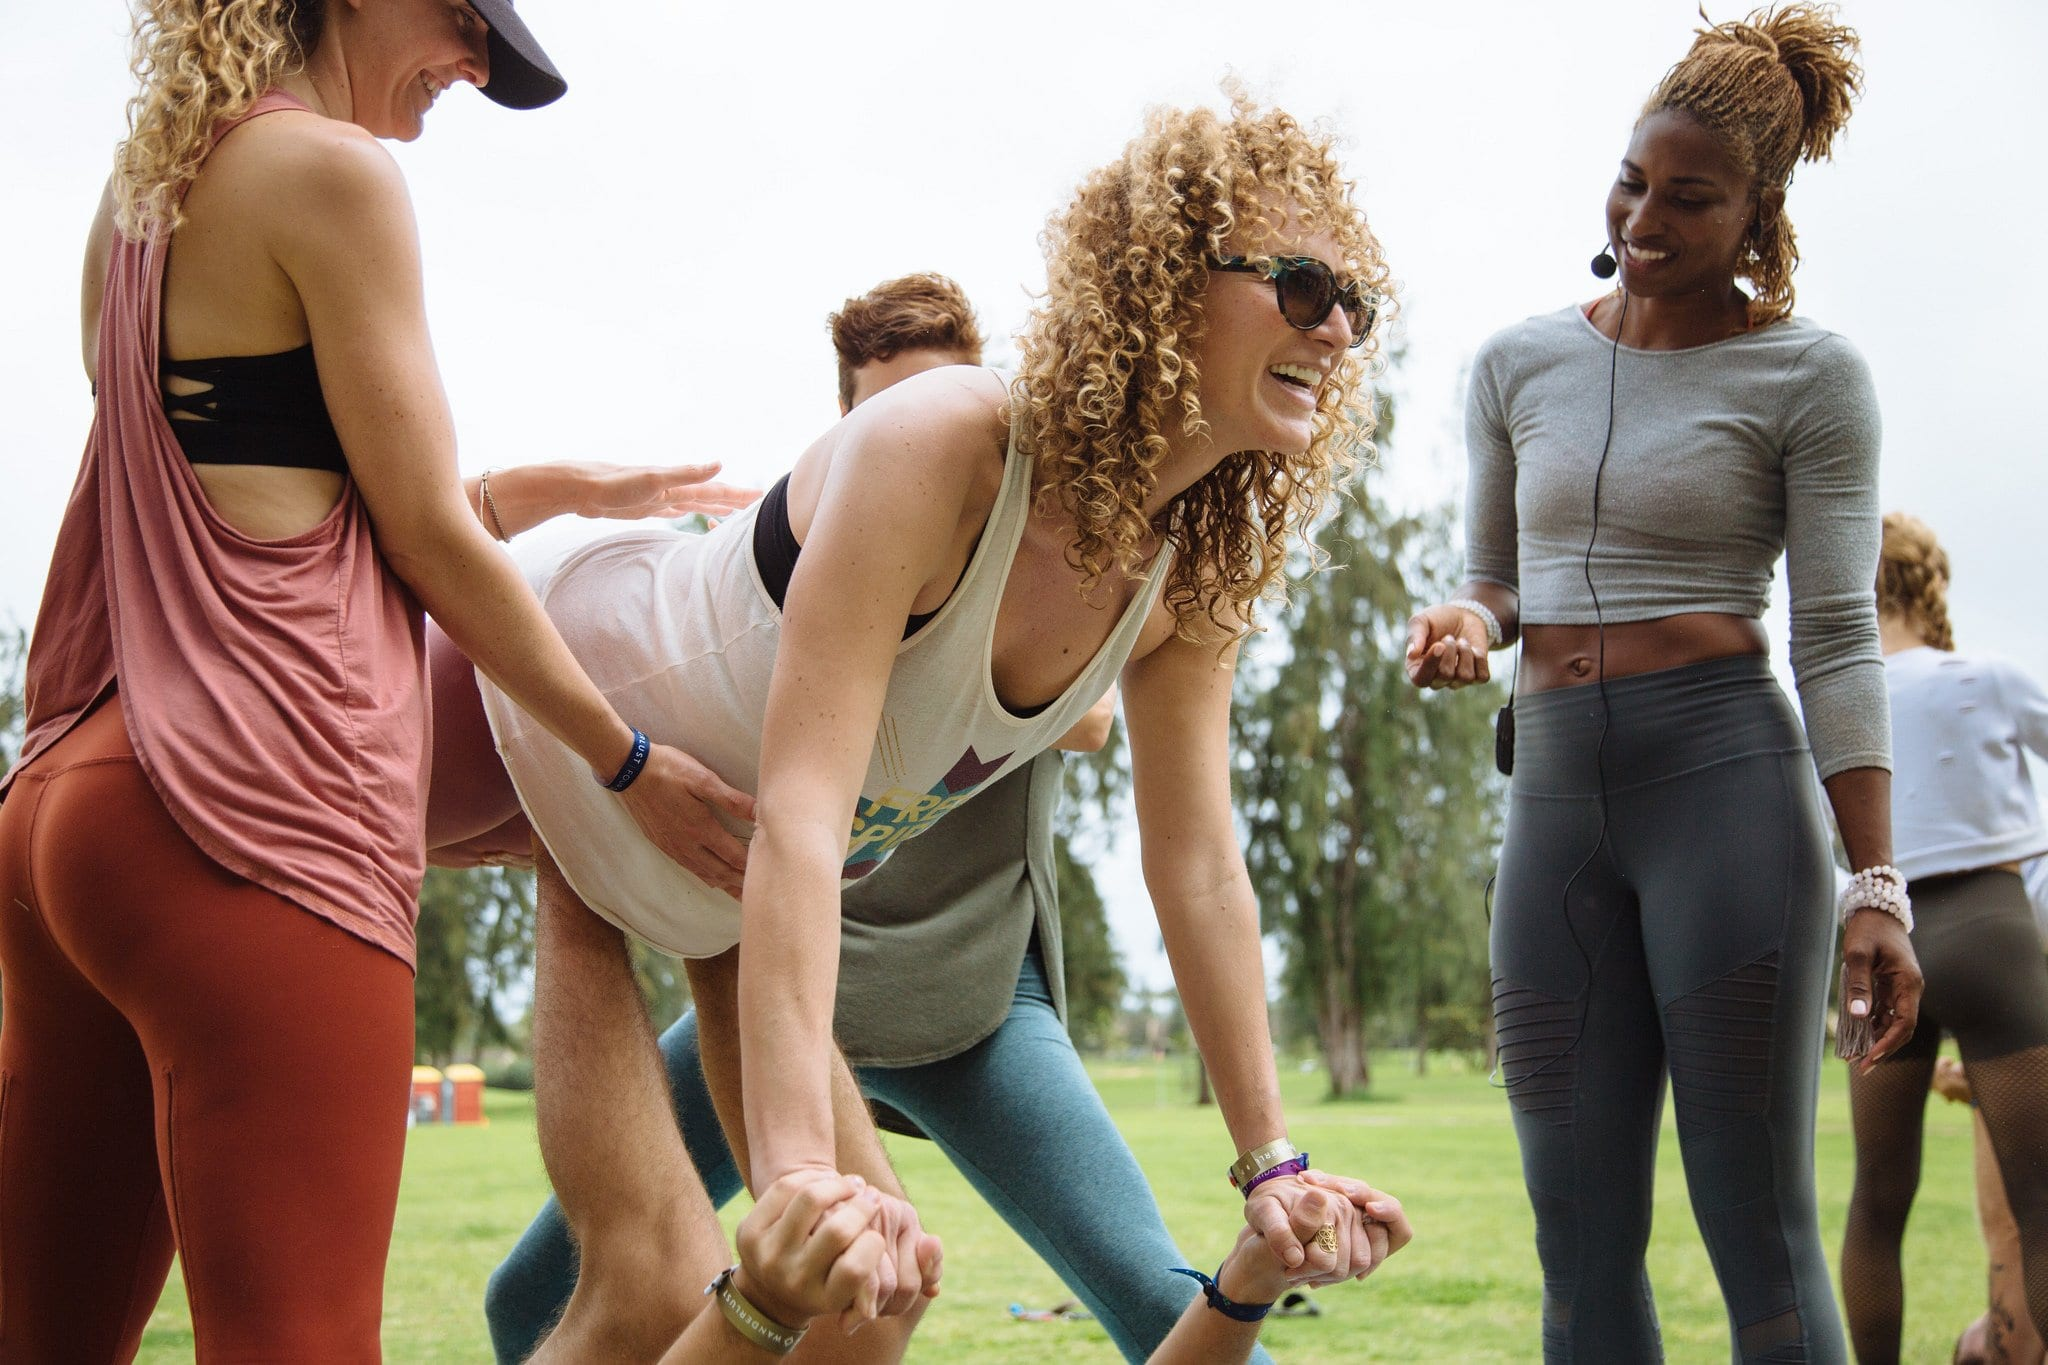 How Yoga Taught Me to Value Female Friendship